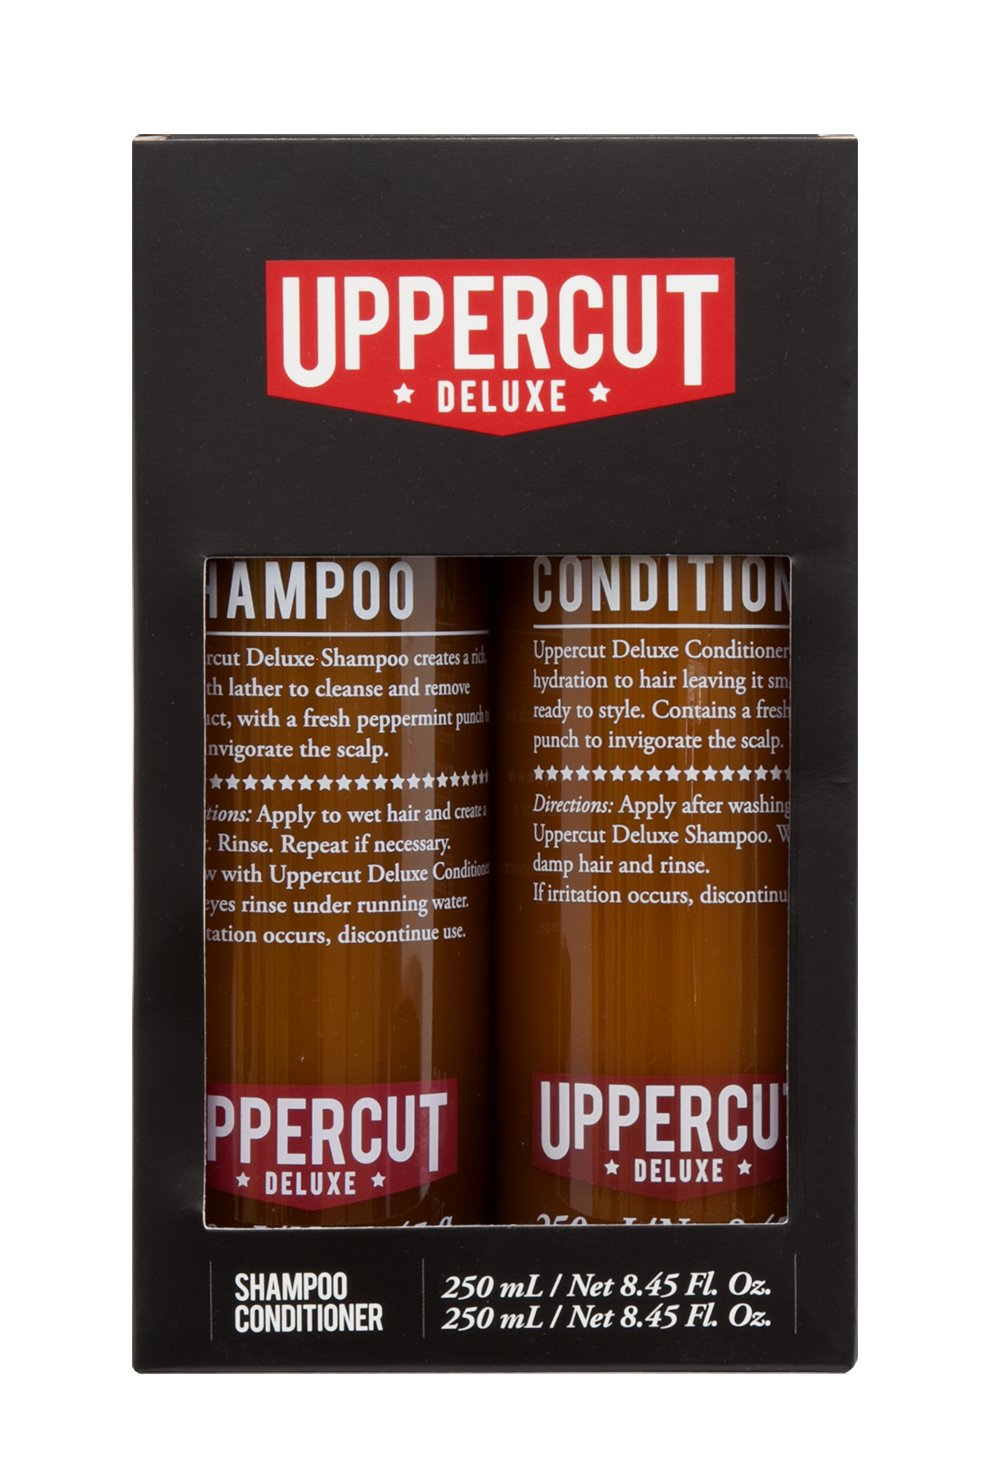 Uppercut Deluxe Duo Shampoo and Conditioner Set